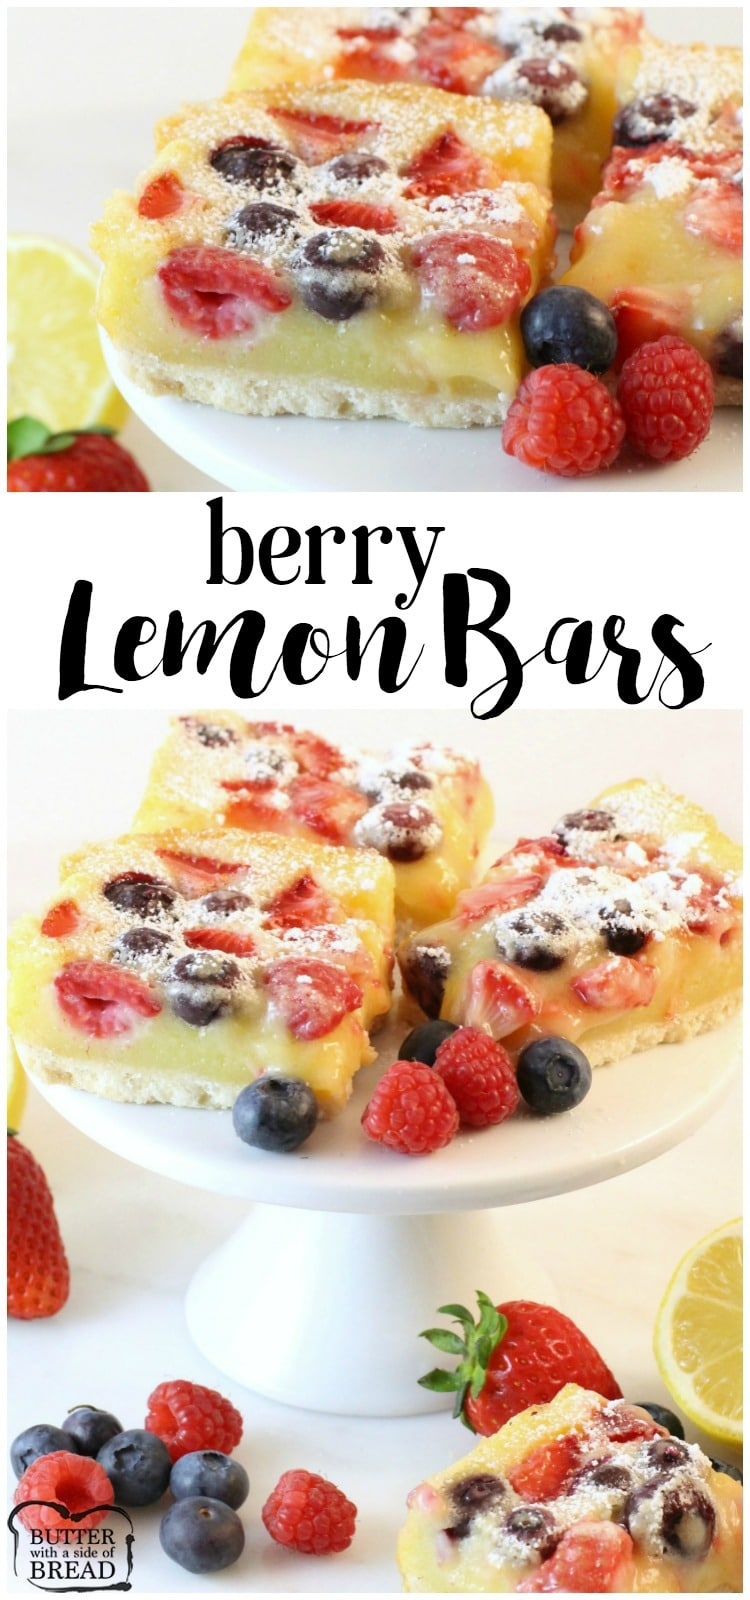 Take your Lemon Bar recipe to the next level by adding fresh berries! Lovely combination in this classic dessert. Butter With A Side of Bread